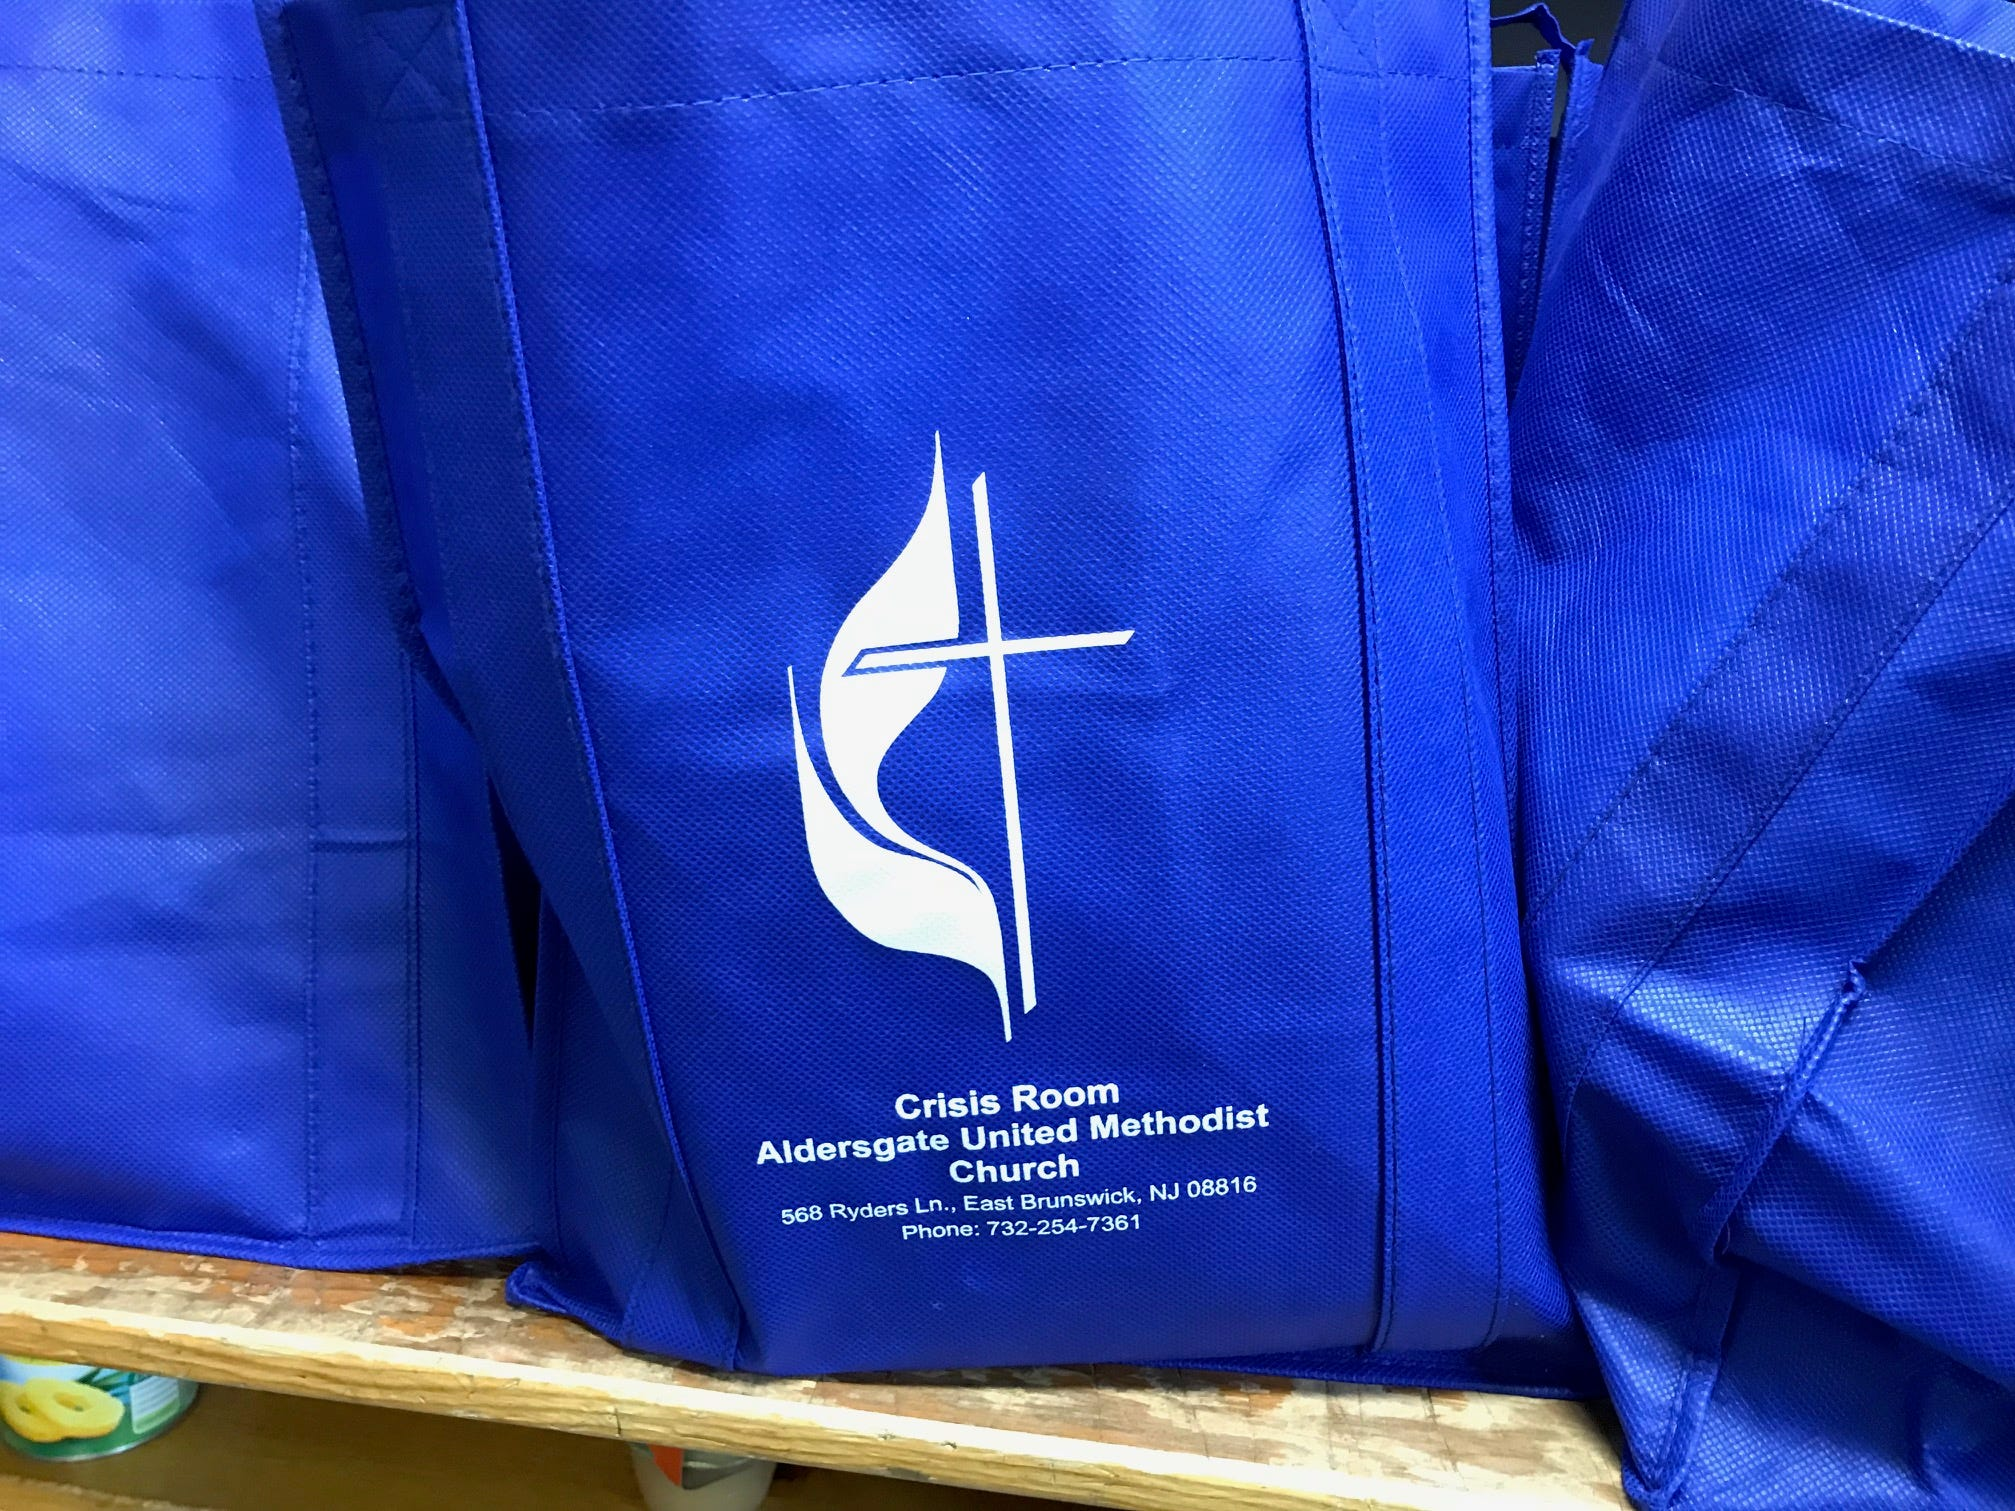 The Crisis Room at Aldersgate United Methodist Church in East Brunswick helps those in need year-round.